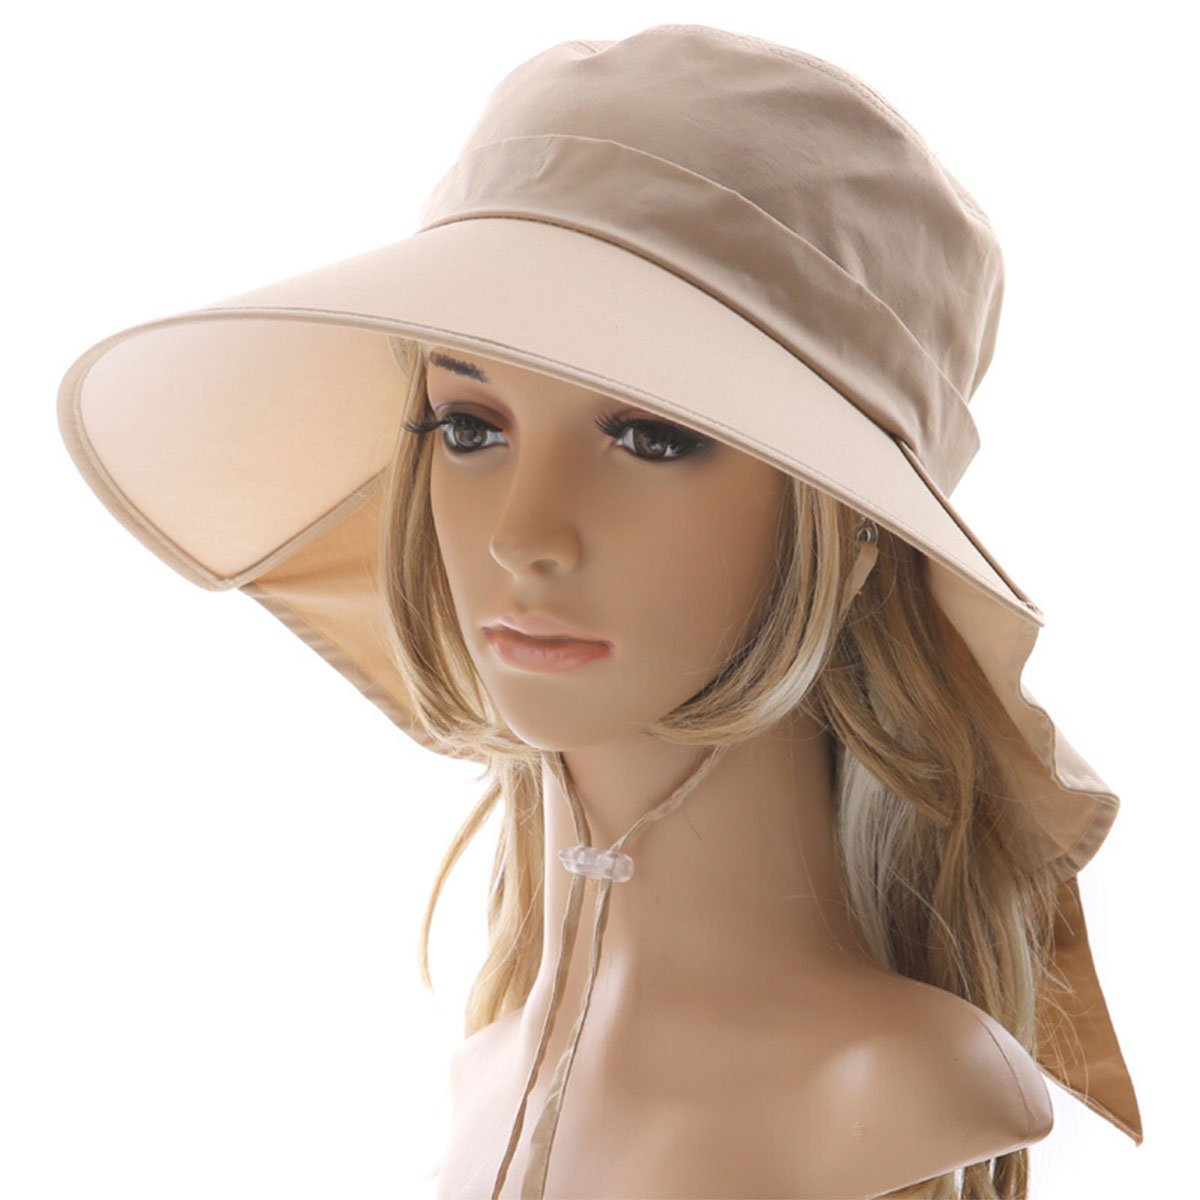 Details about Ls Lady Womens Summer Flap Cover Cap Cotton Anti-UV UPF 50+ Sun  Shade Hat Bow. b8689db43a